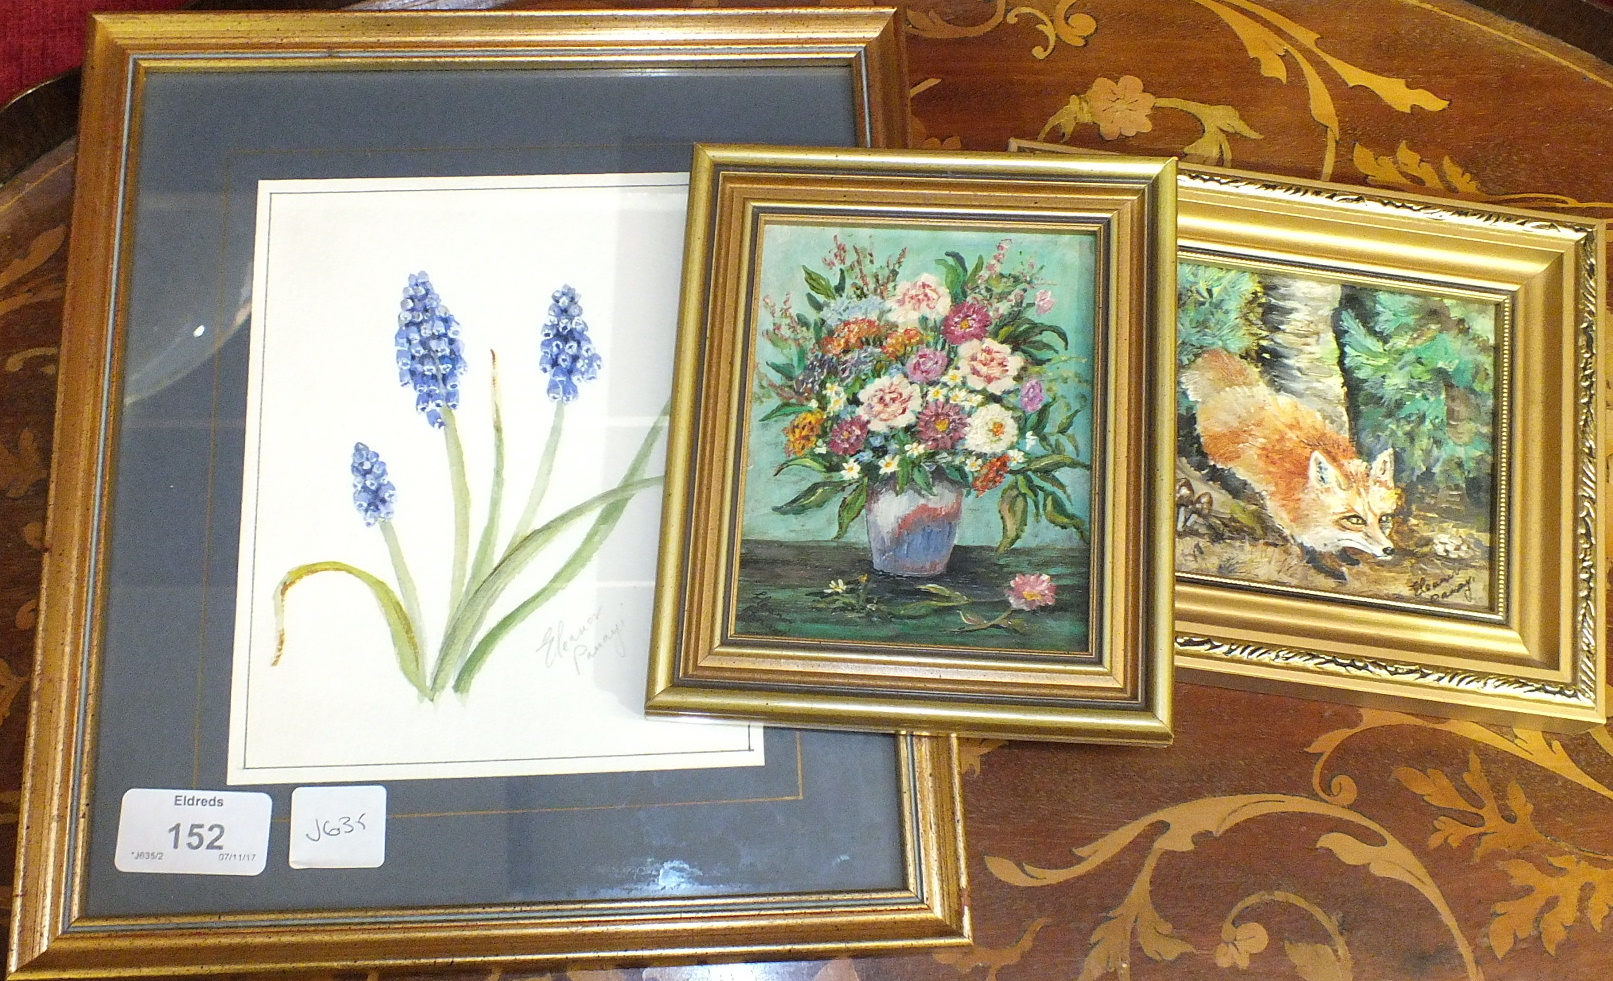 Lot 152 - Eleanor Panayi, a collection of six small framed oil paintings, four depicting landscapes, one still